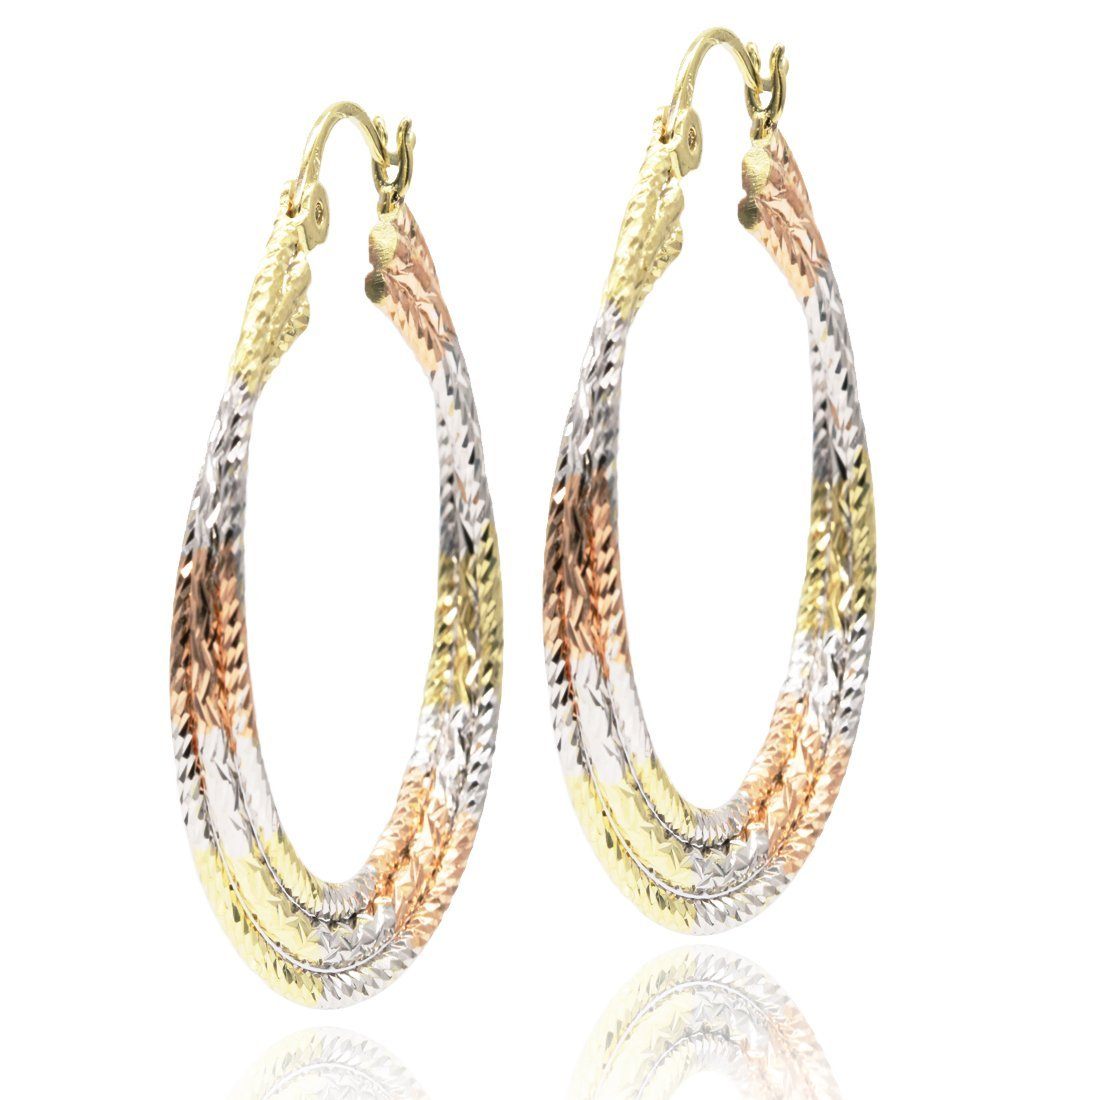 Juvel Jewelry Fine Gold Plated 3 Rings Multi Color Special Earrings Hoop for Birthday Gift